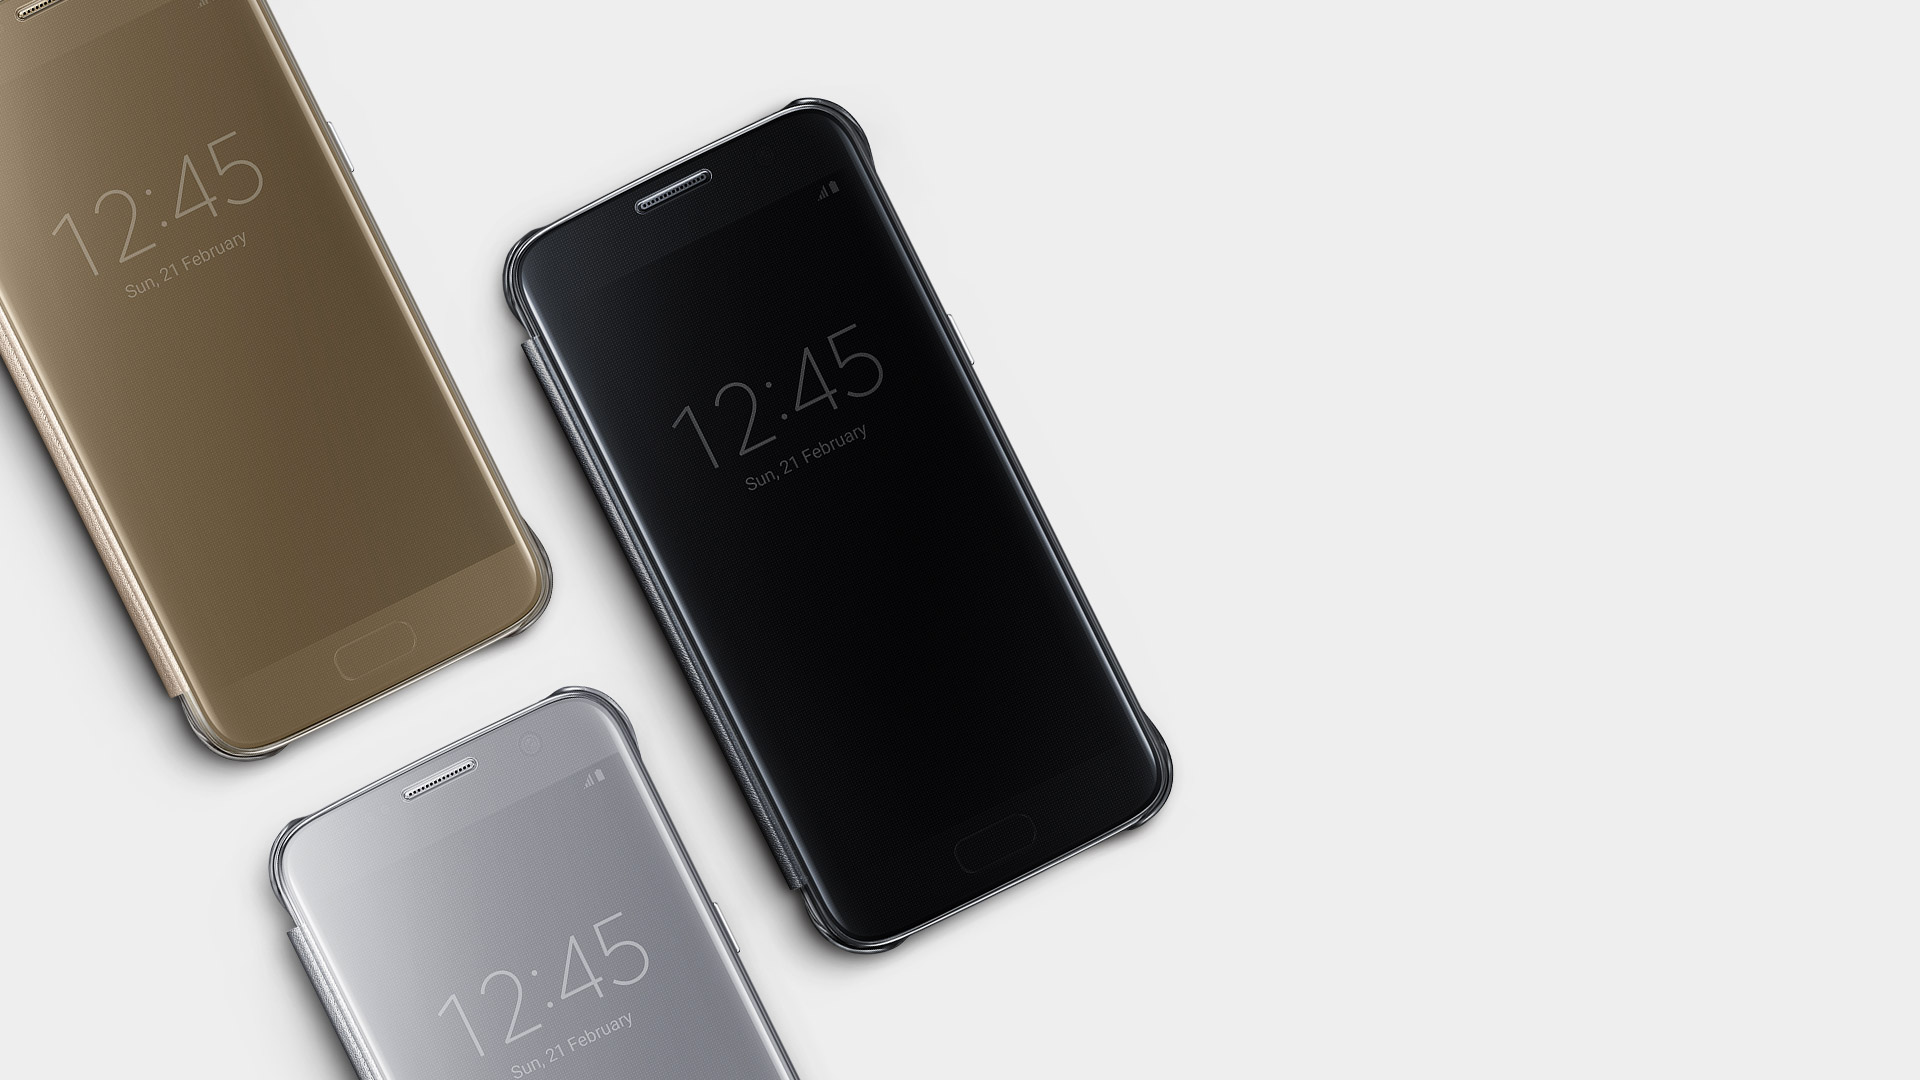 official accessories for the galaxy s7 and the galaxy s7